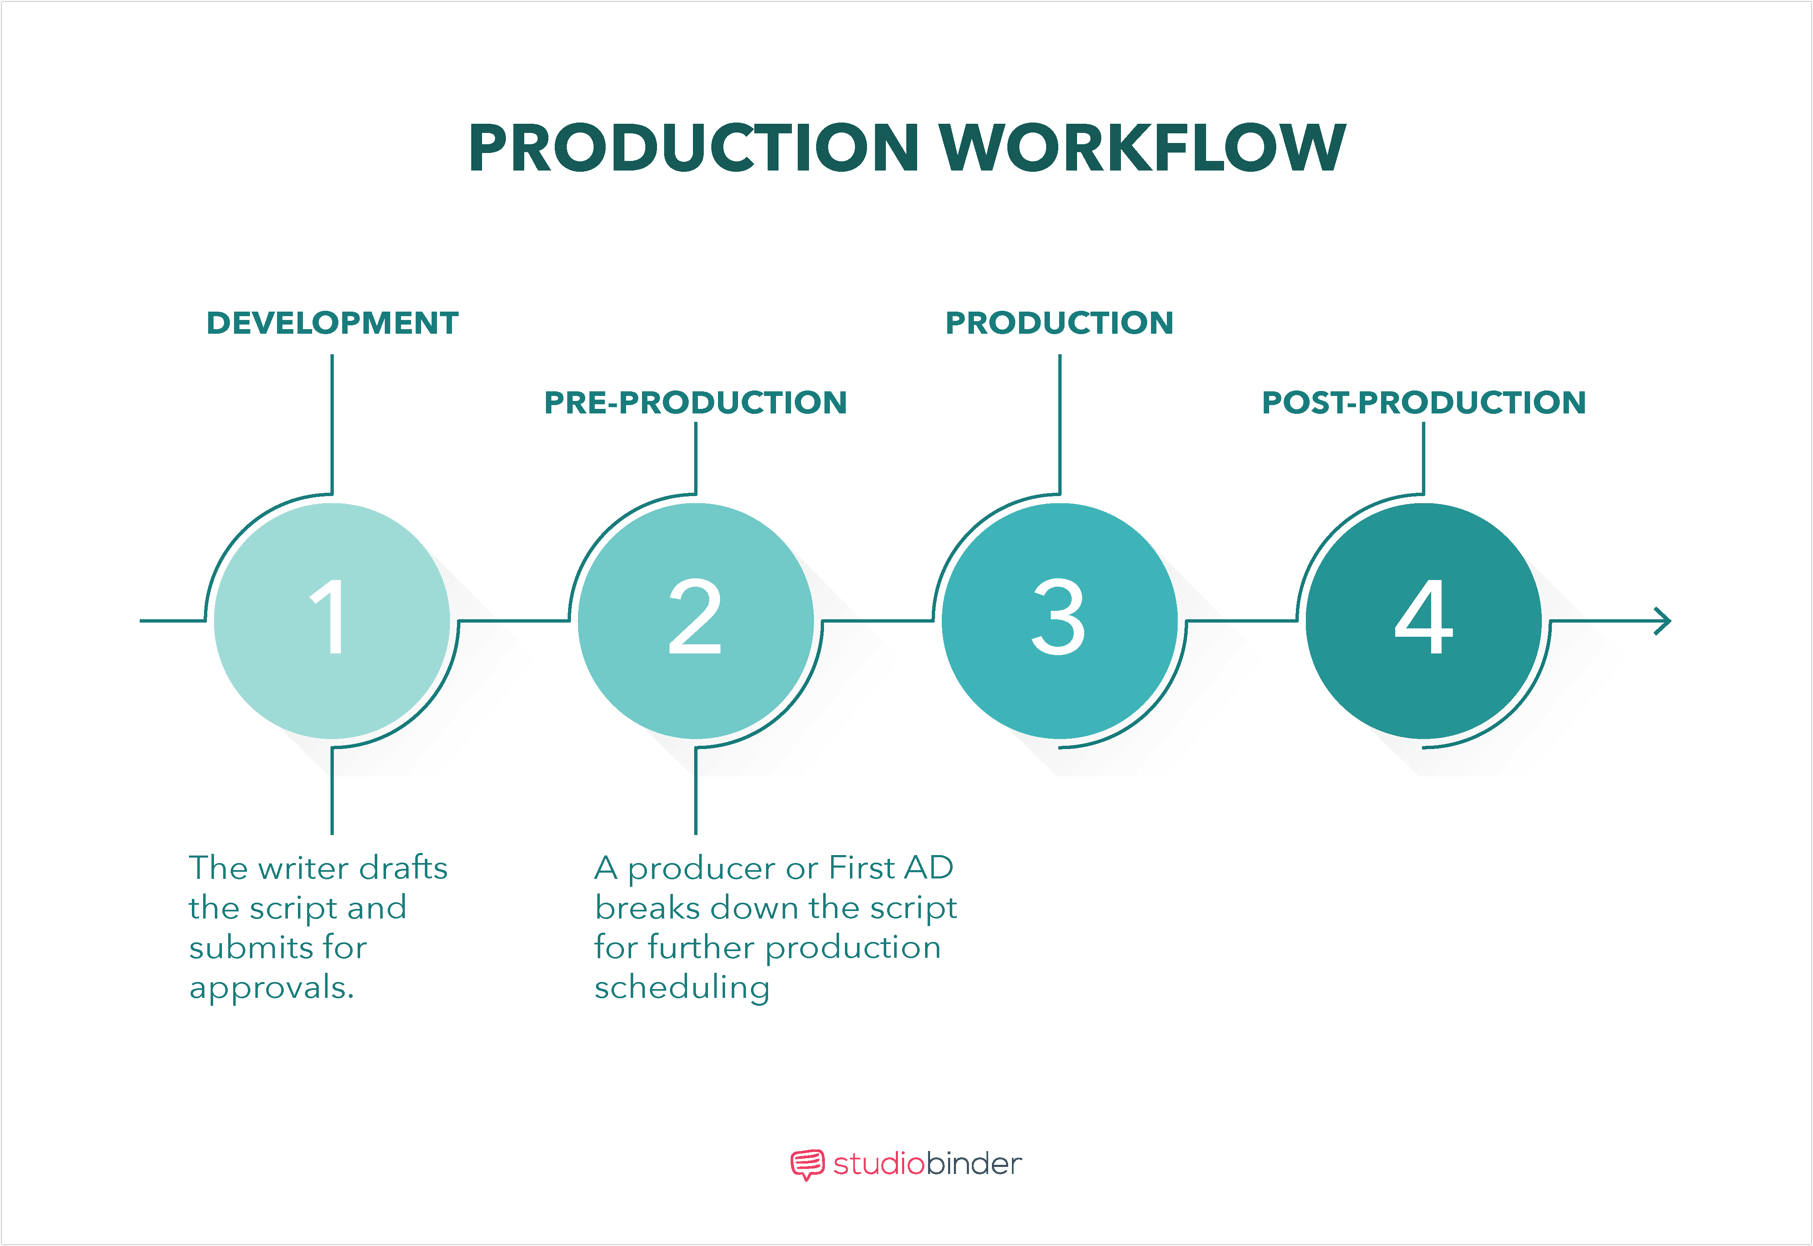 Film Production Scheduling Explained: How to Make a Scene Breakdown